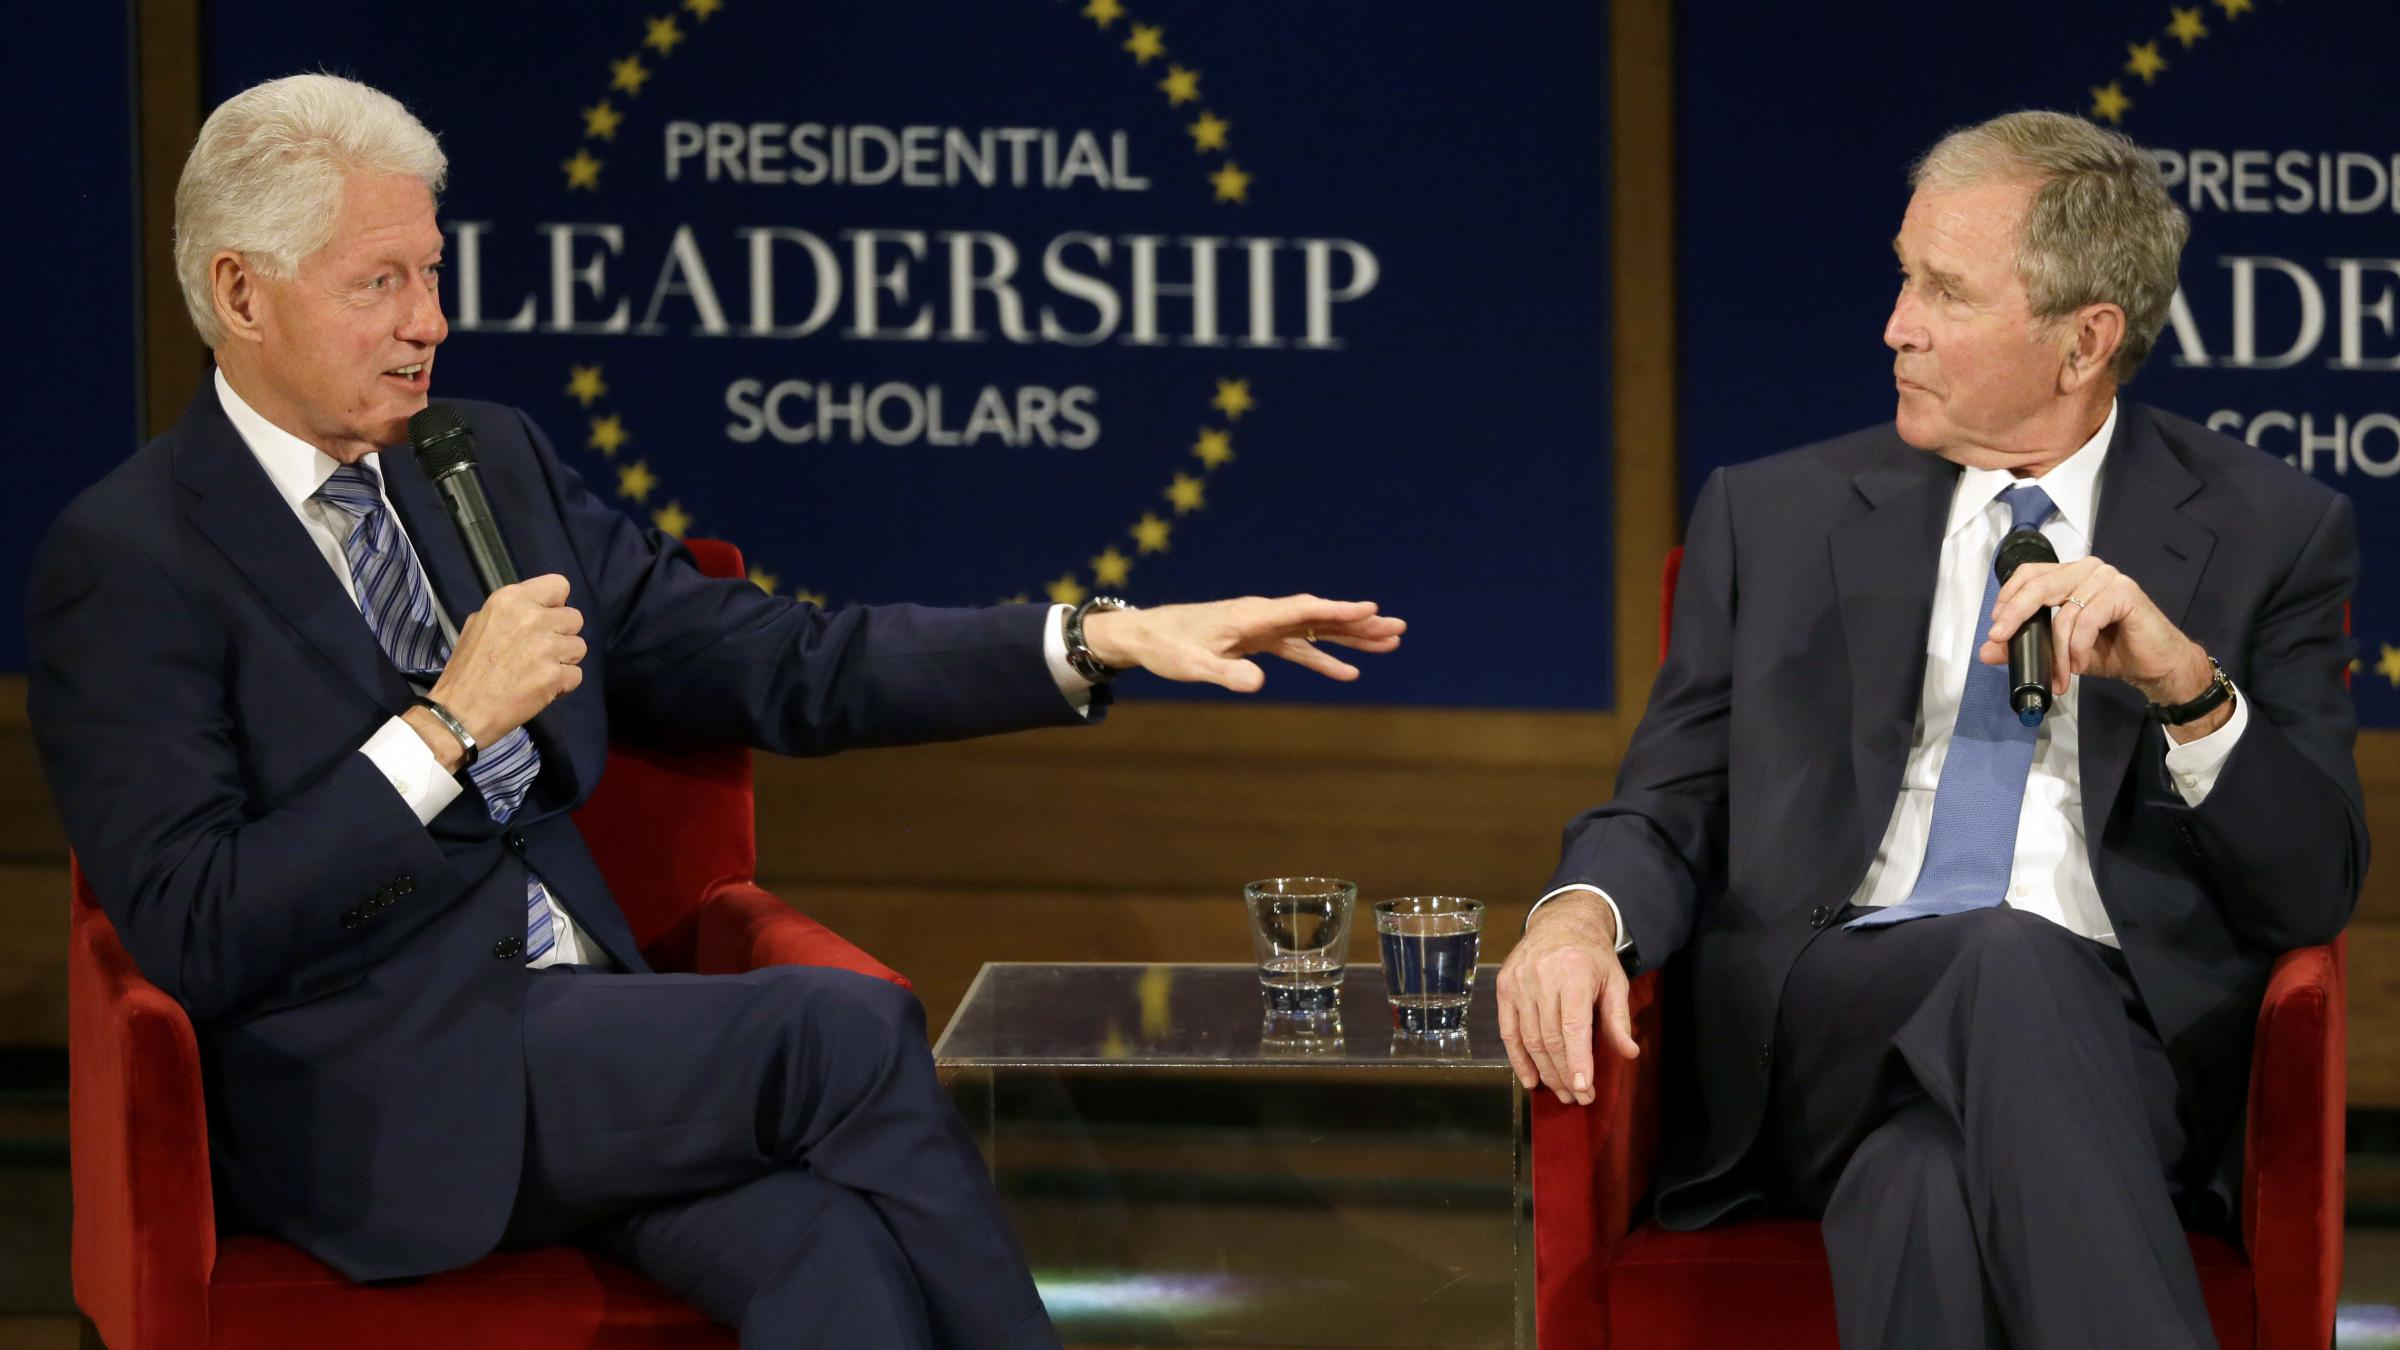 Bush And Bill Clinton Discuss Their Working Relationship, Despite Party Lines